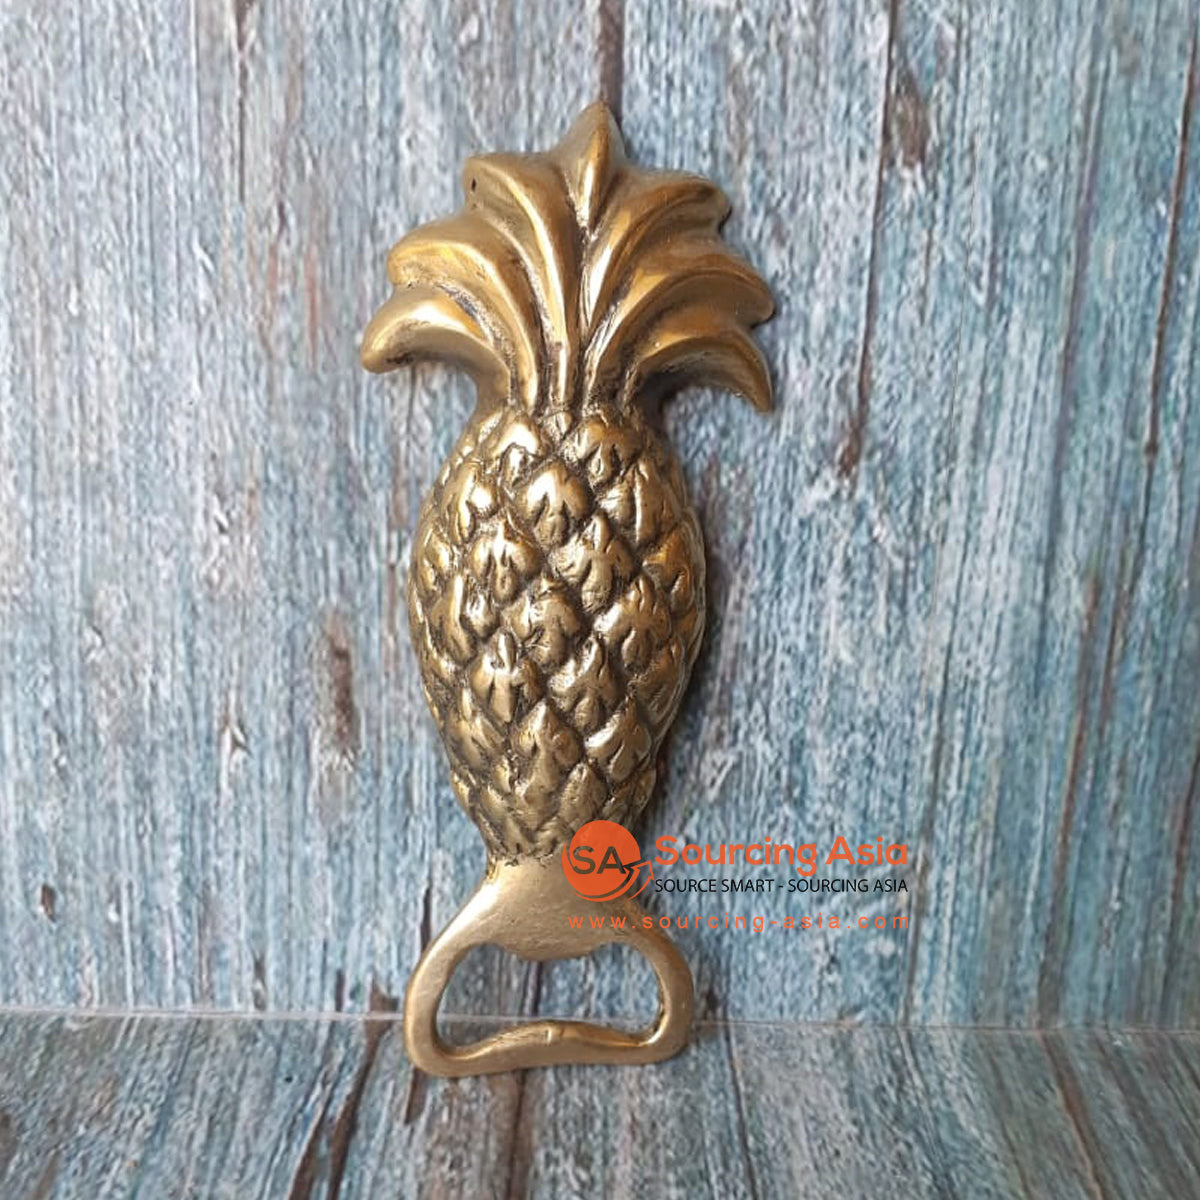 GB151 BRONZE BOTTLE OPENER PINEAPPLE